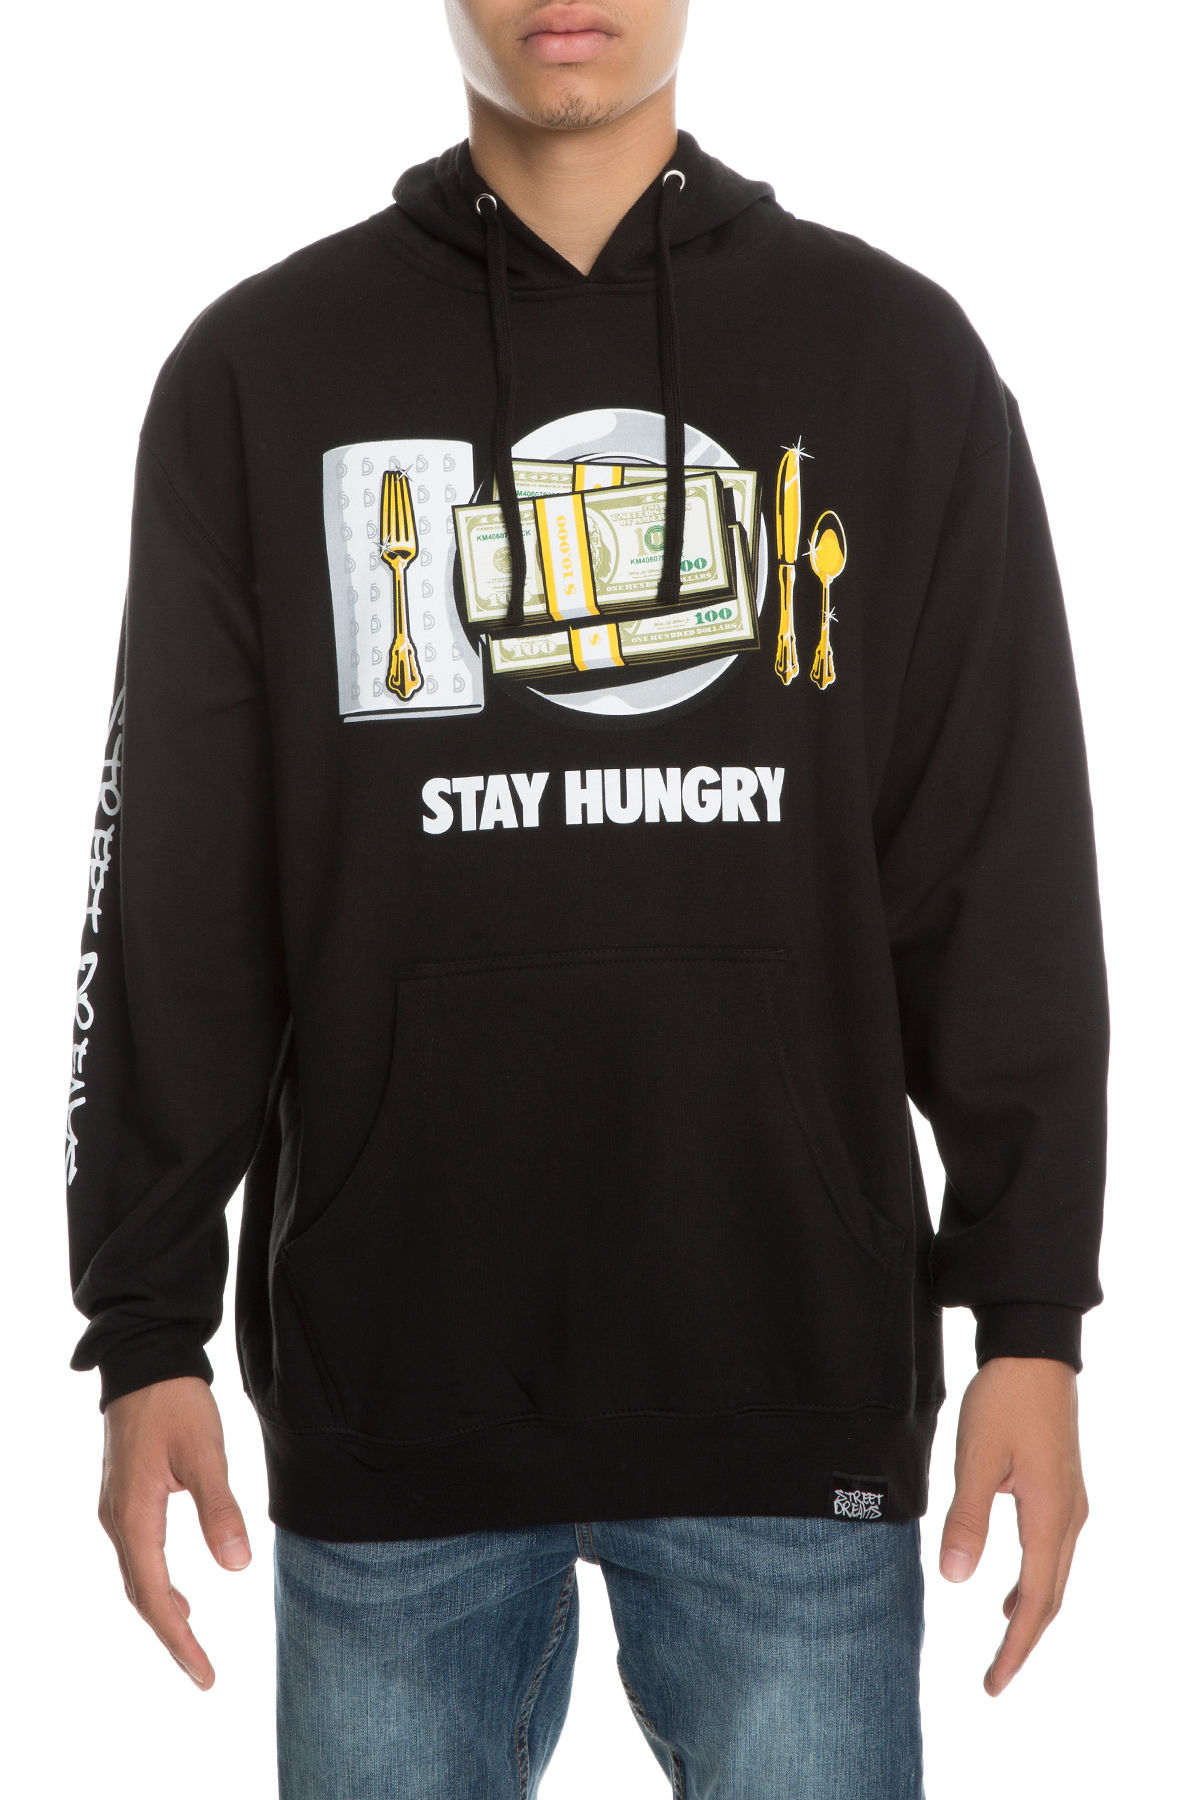 Image of The Stay Hungry Pullover Hoodie in Black